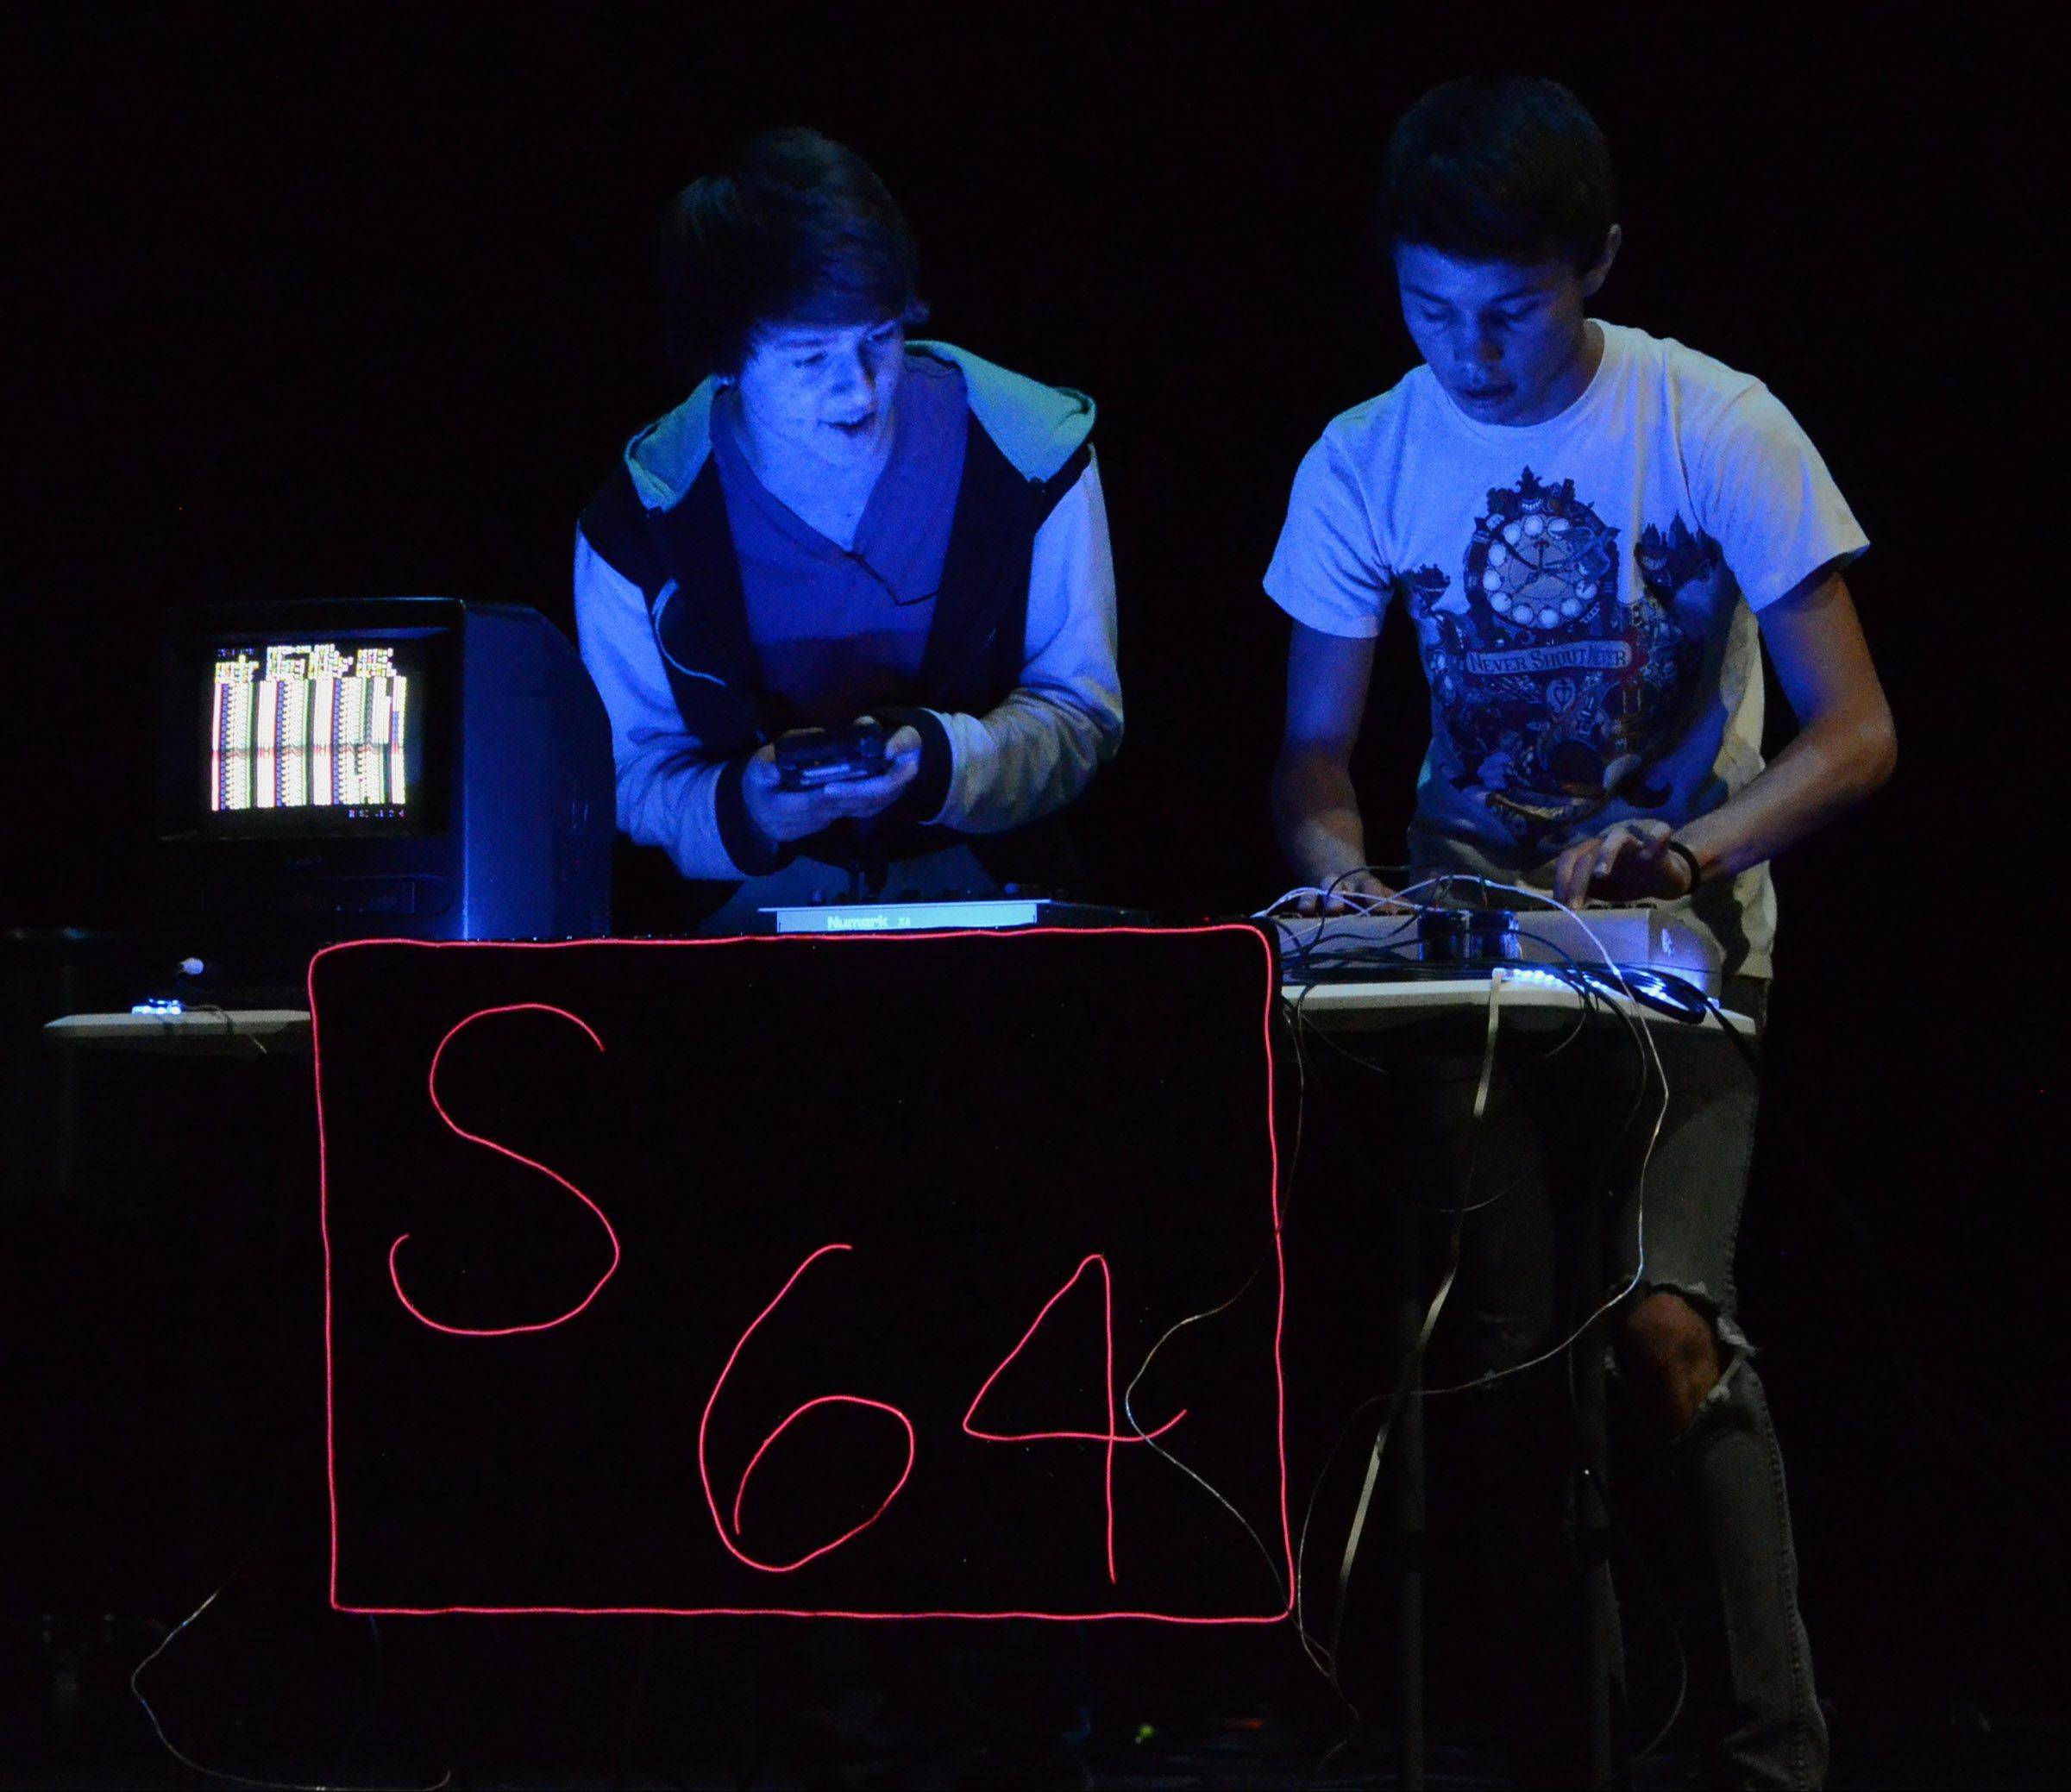 """Sophmore 64"" duo Jake Basala, 16, left, and Calvin Hughes, 17, both of LIndenhurst, preform music using a Commodore 64 and two Game Boys."